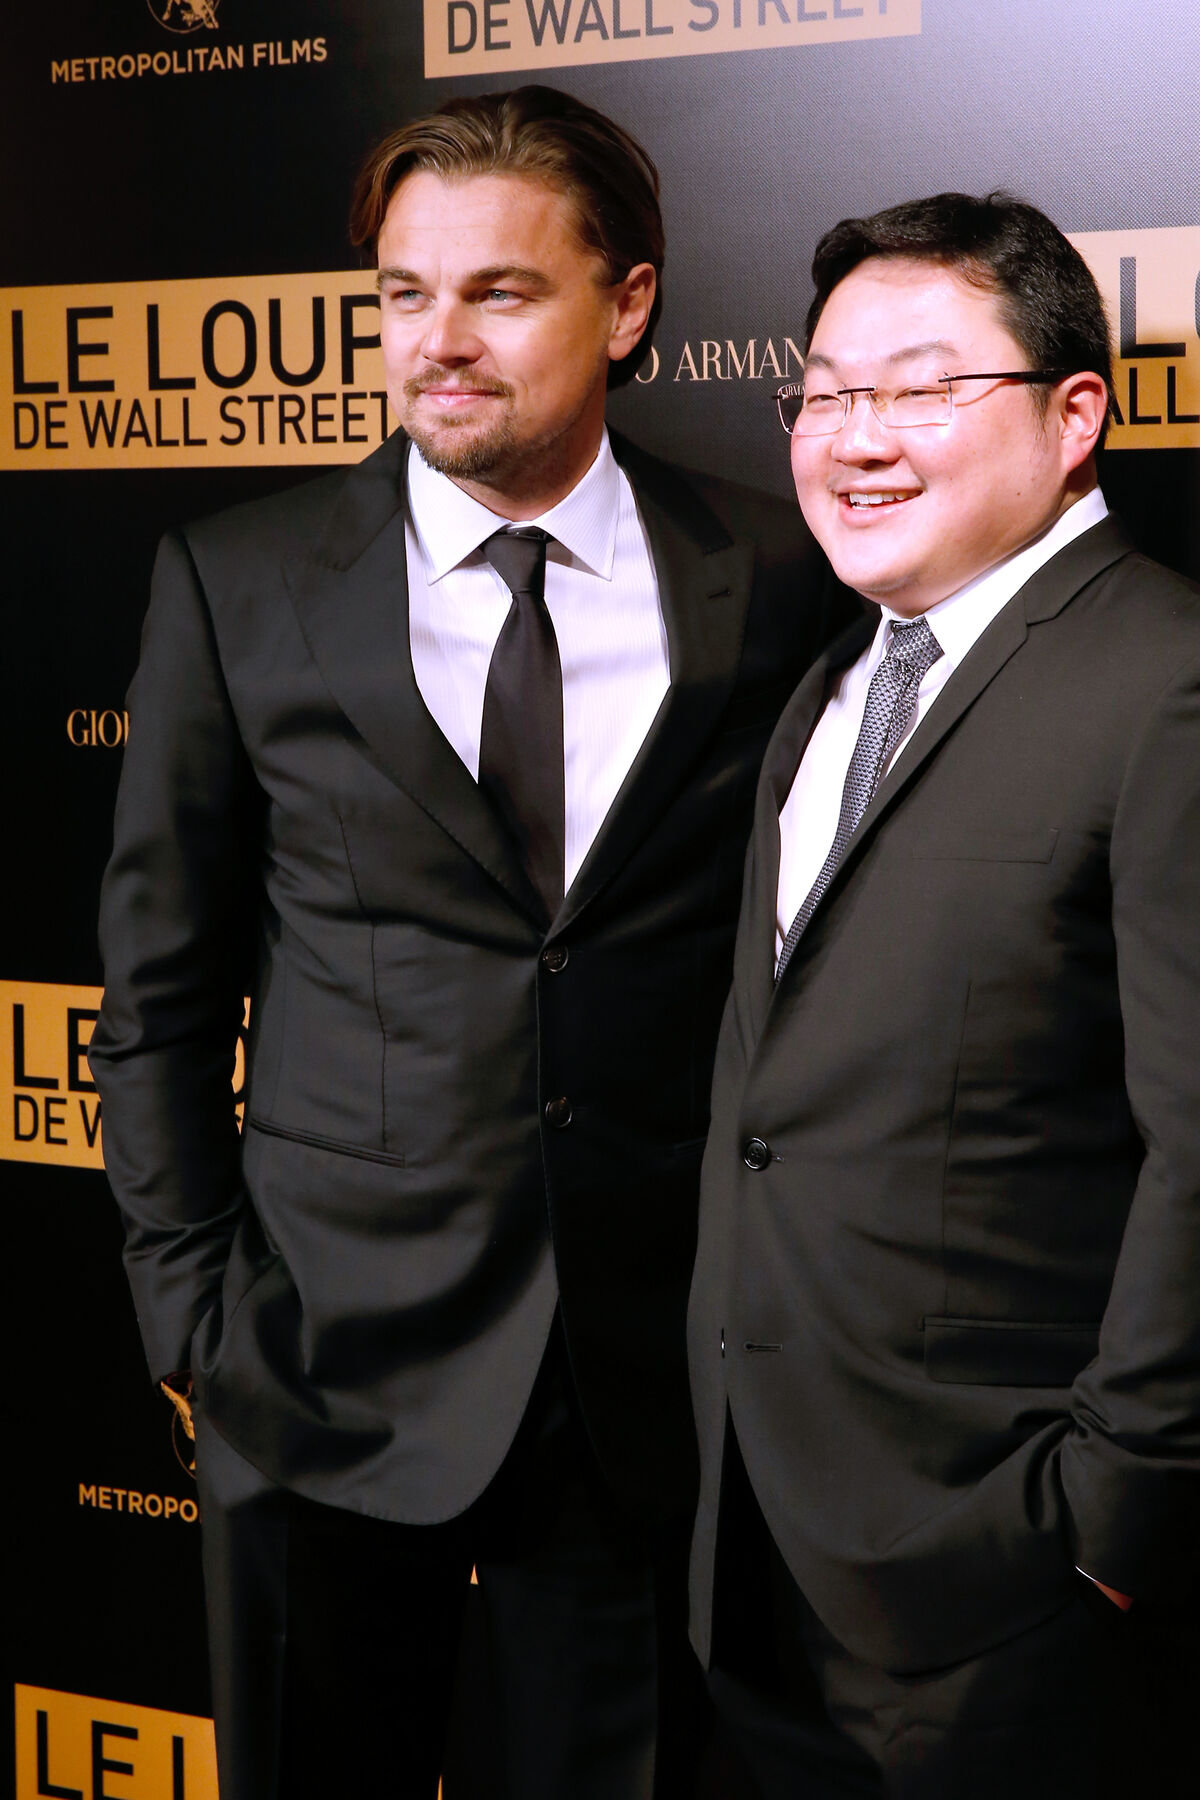 Leonardo DiCaprio with Jho Low at The Wolf of Wall Street premiere in Paris, 2013. Photo by Bertrand Rindoff Petroff/Getty Images.